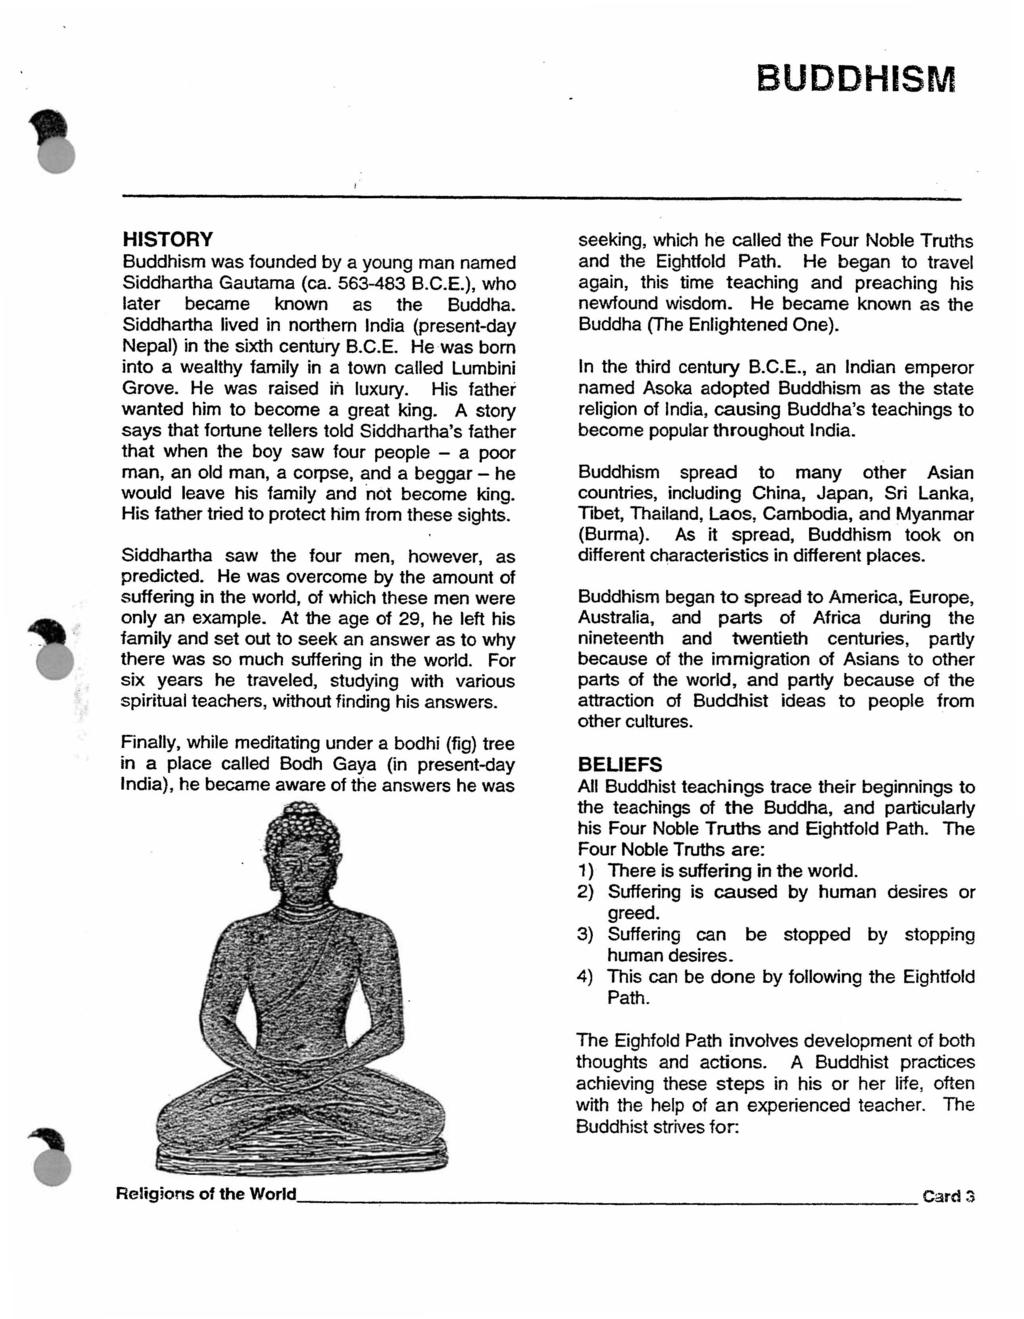 BUDDHISM HISTORY Buddhism was founded by a young man named Siddhartha Gautama (ca. 563-483 B.C.E.), who later became known as the Buddha.